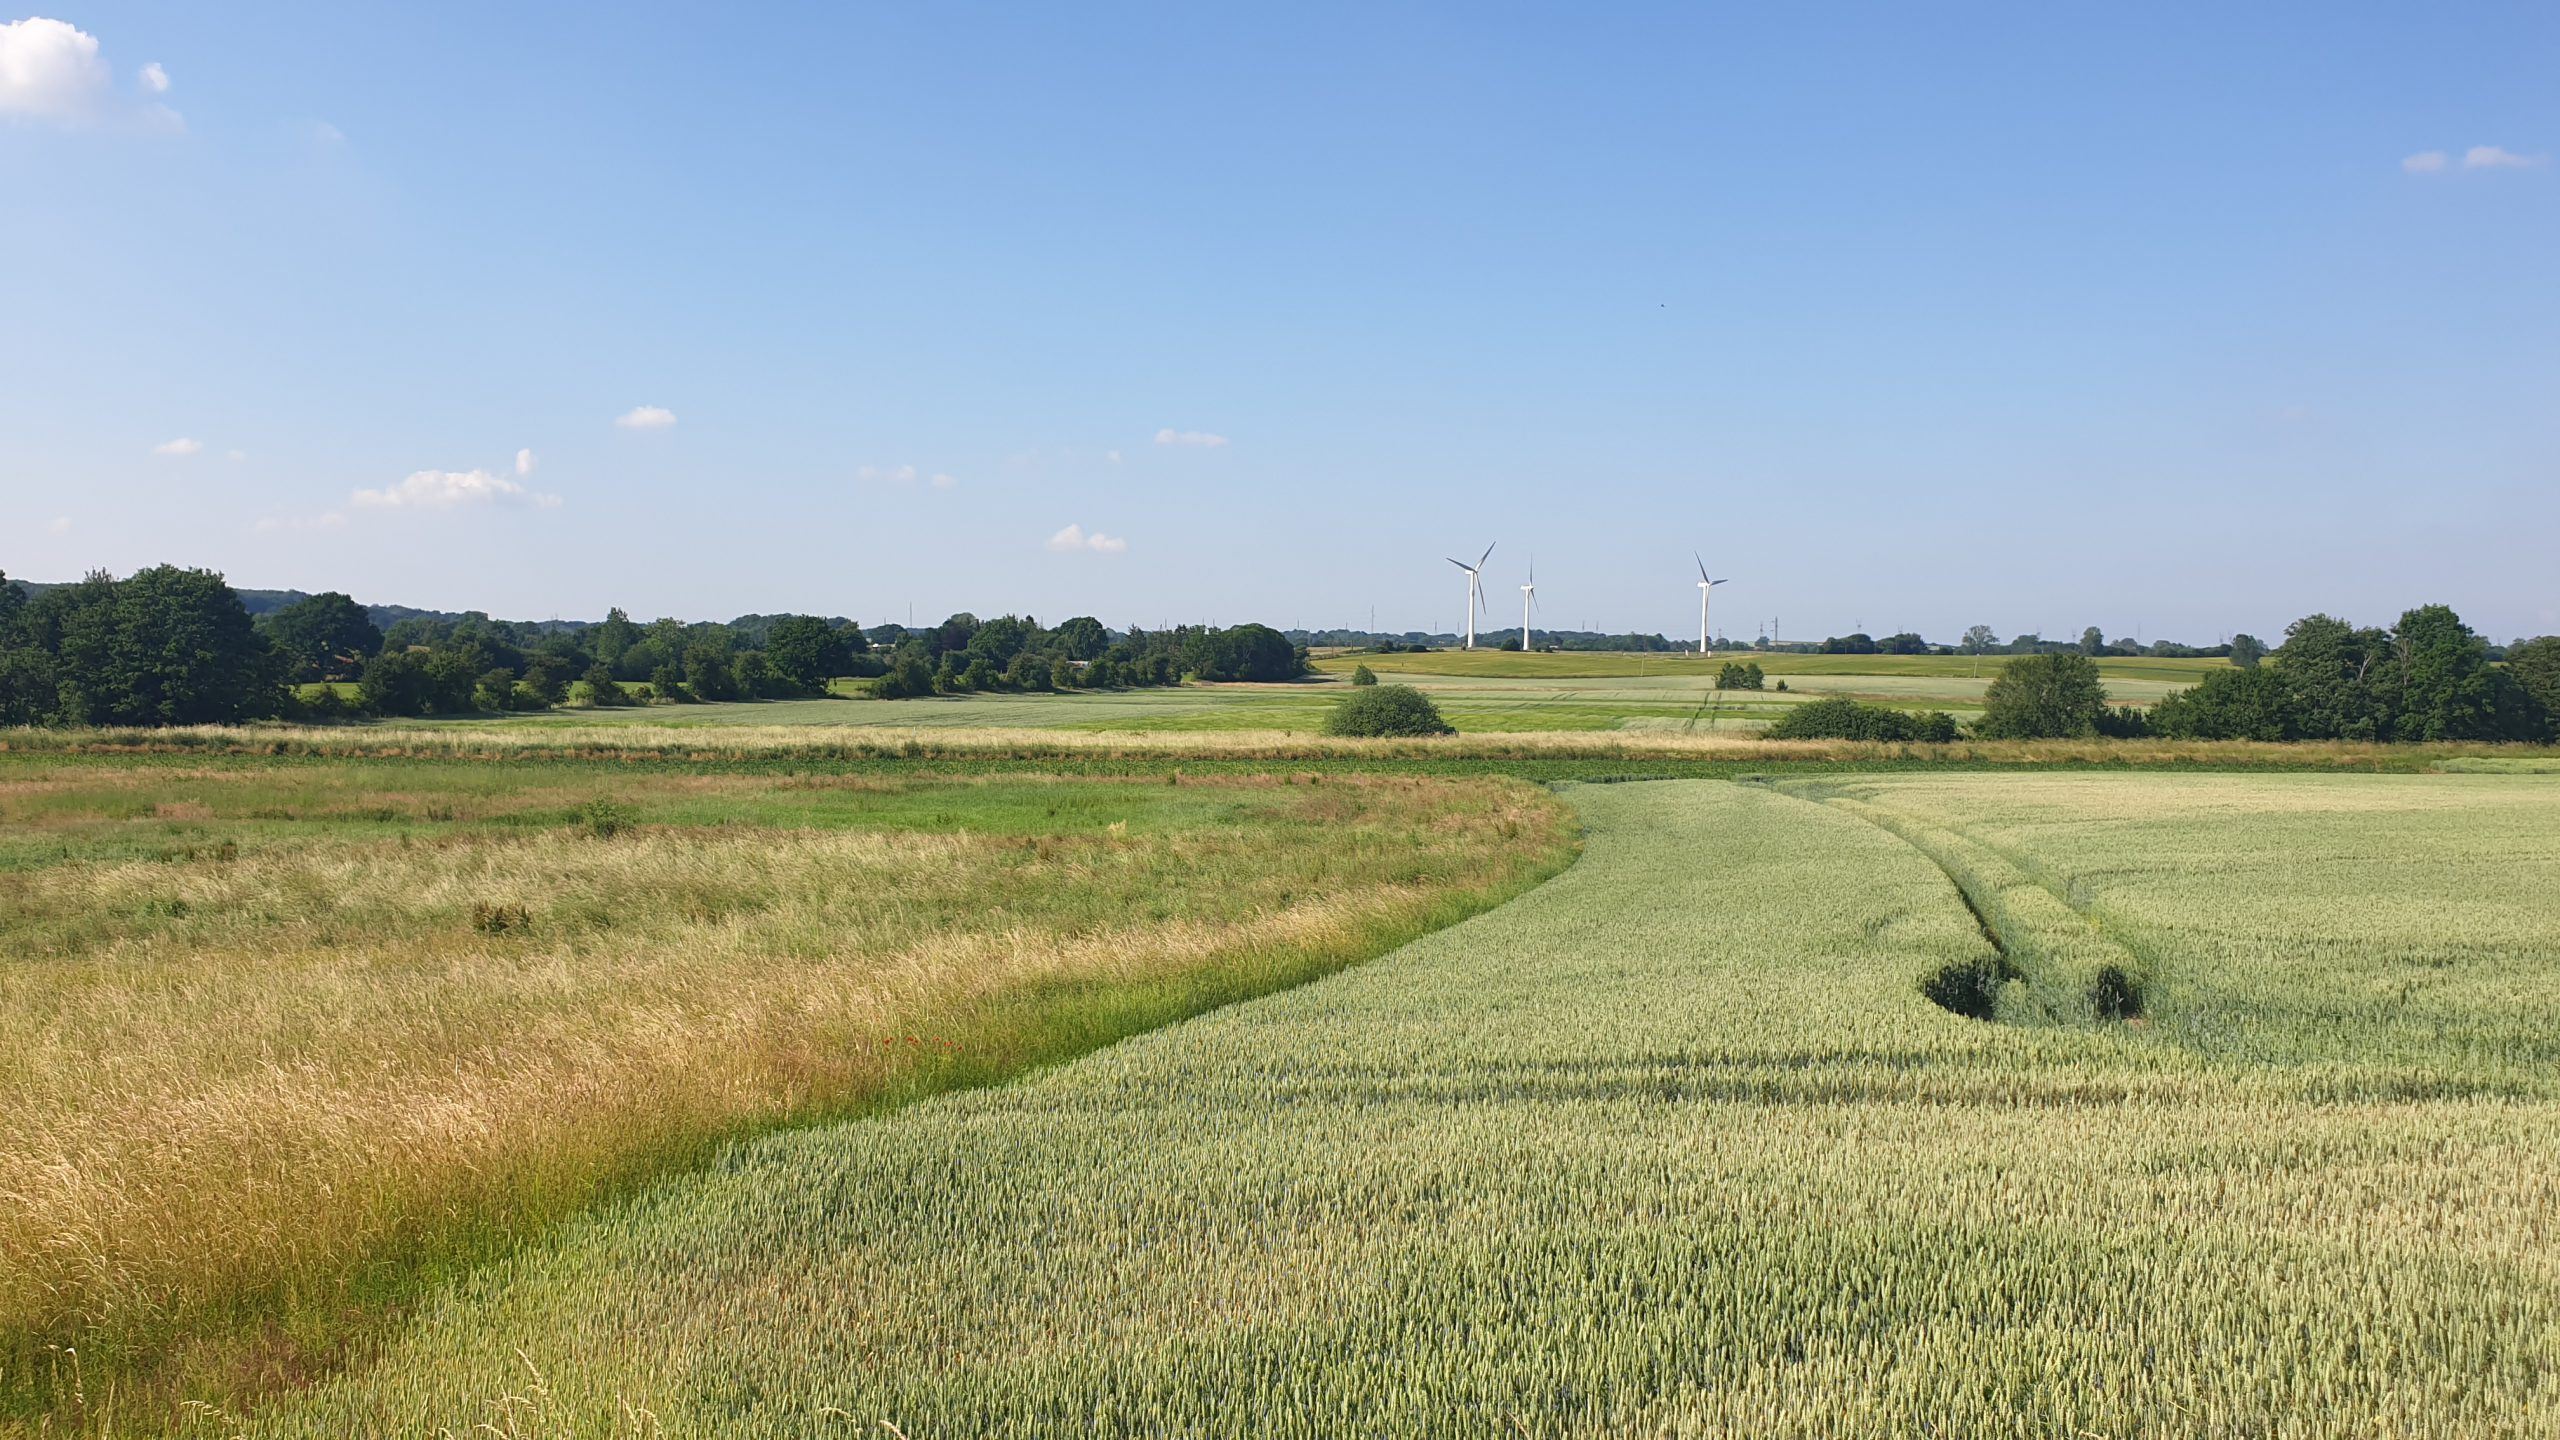 Sunlit field under blue sky with three white windturbines in the background